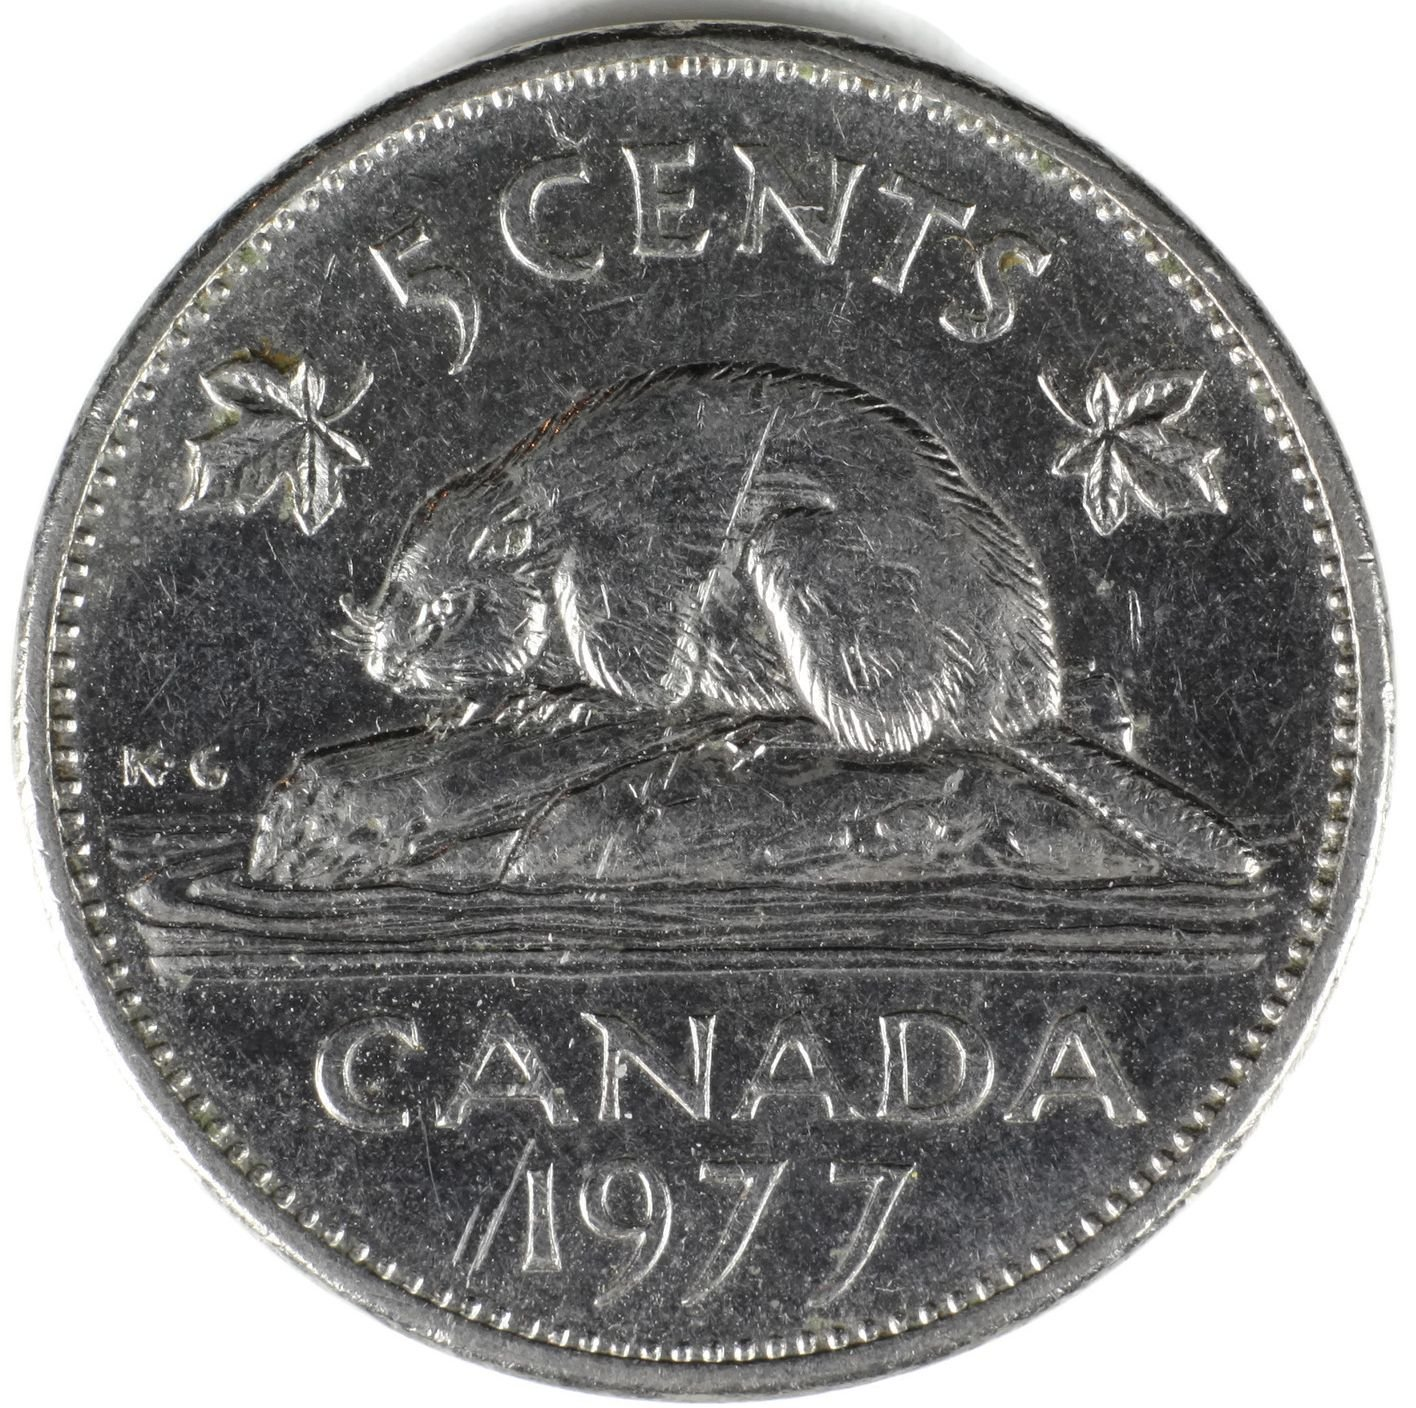 1977 Ca Canada Beaver 5 Cents Nickel Fair At Amazons Collectible Coins Store